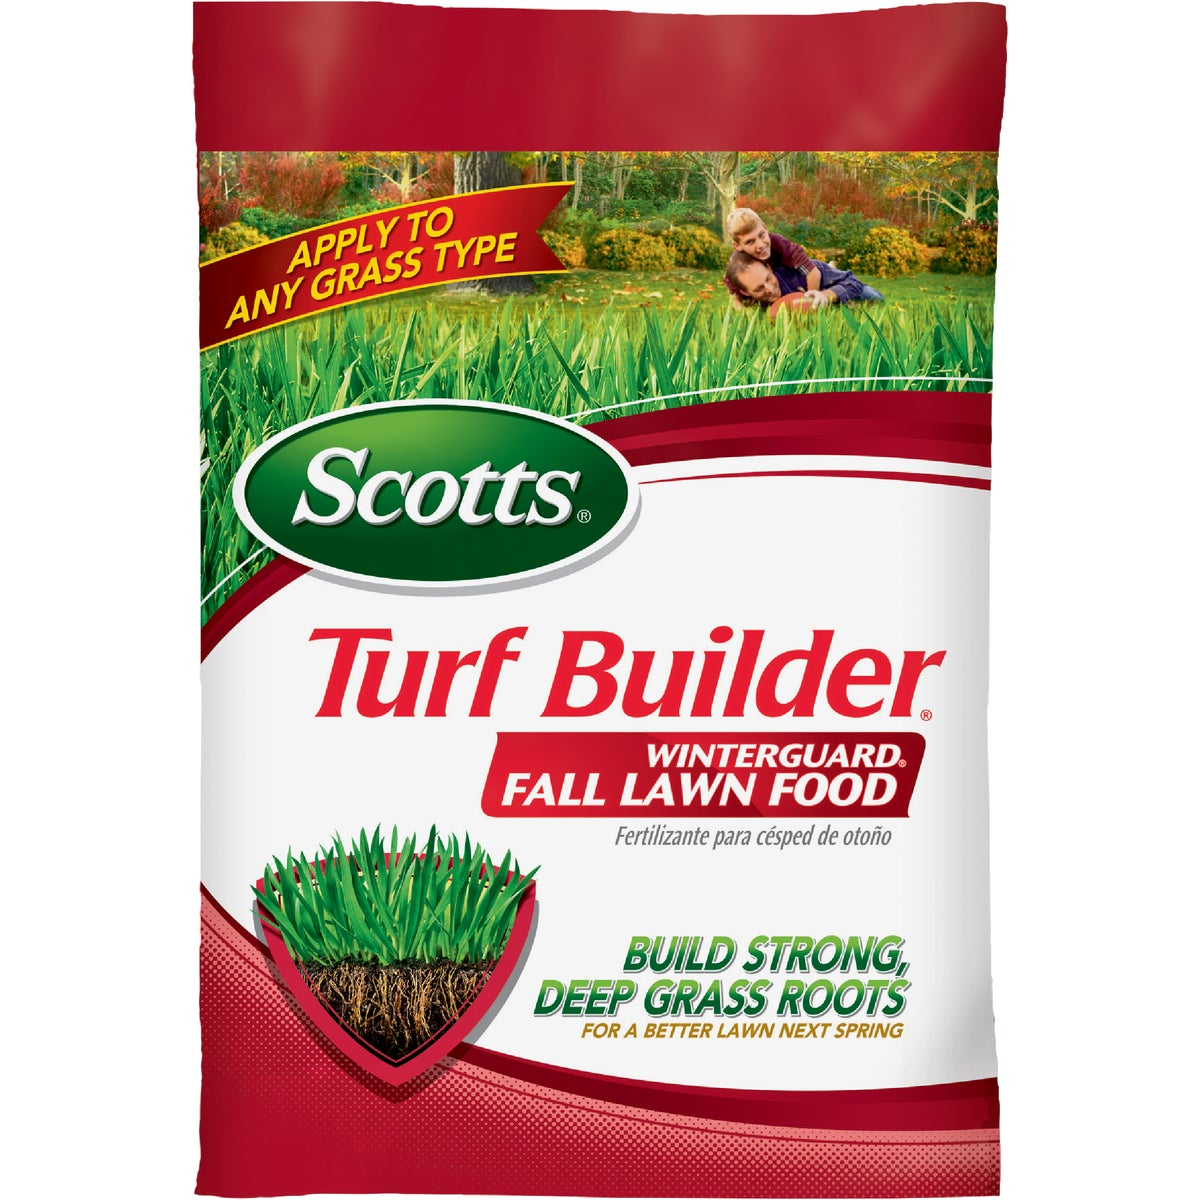 5M TURF BULDR WINTERGARD - 38605D by Scotts Company